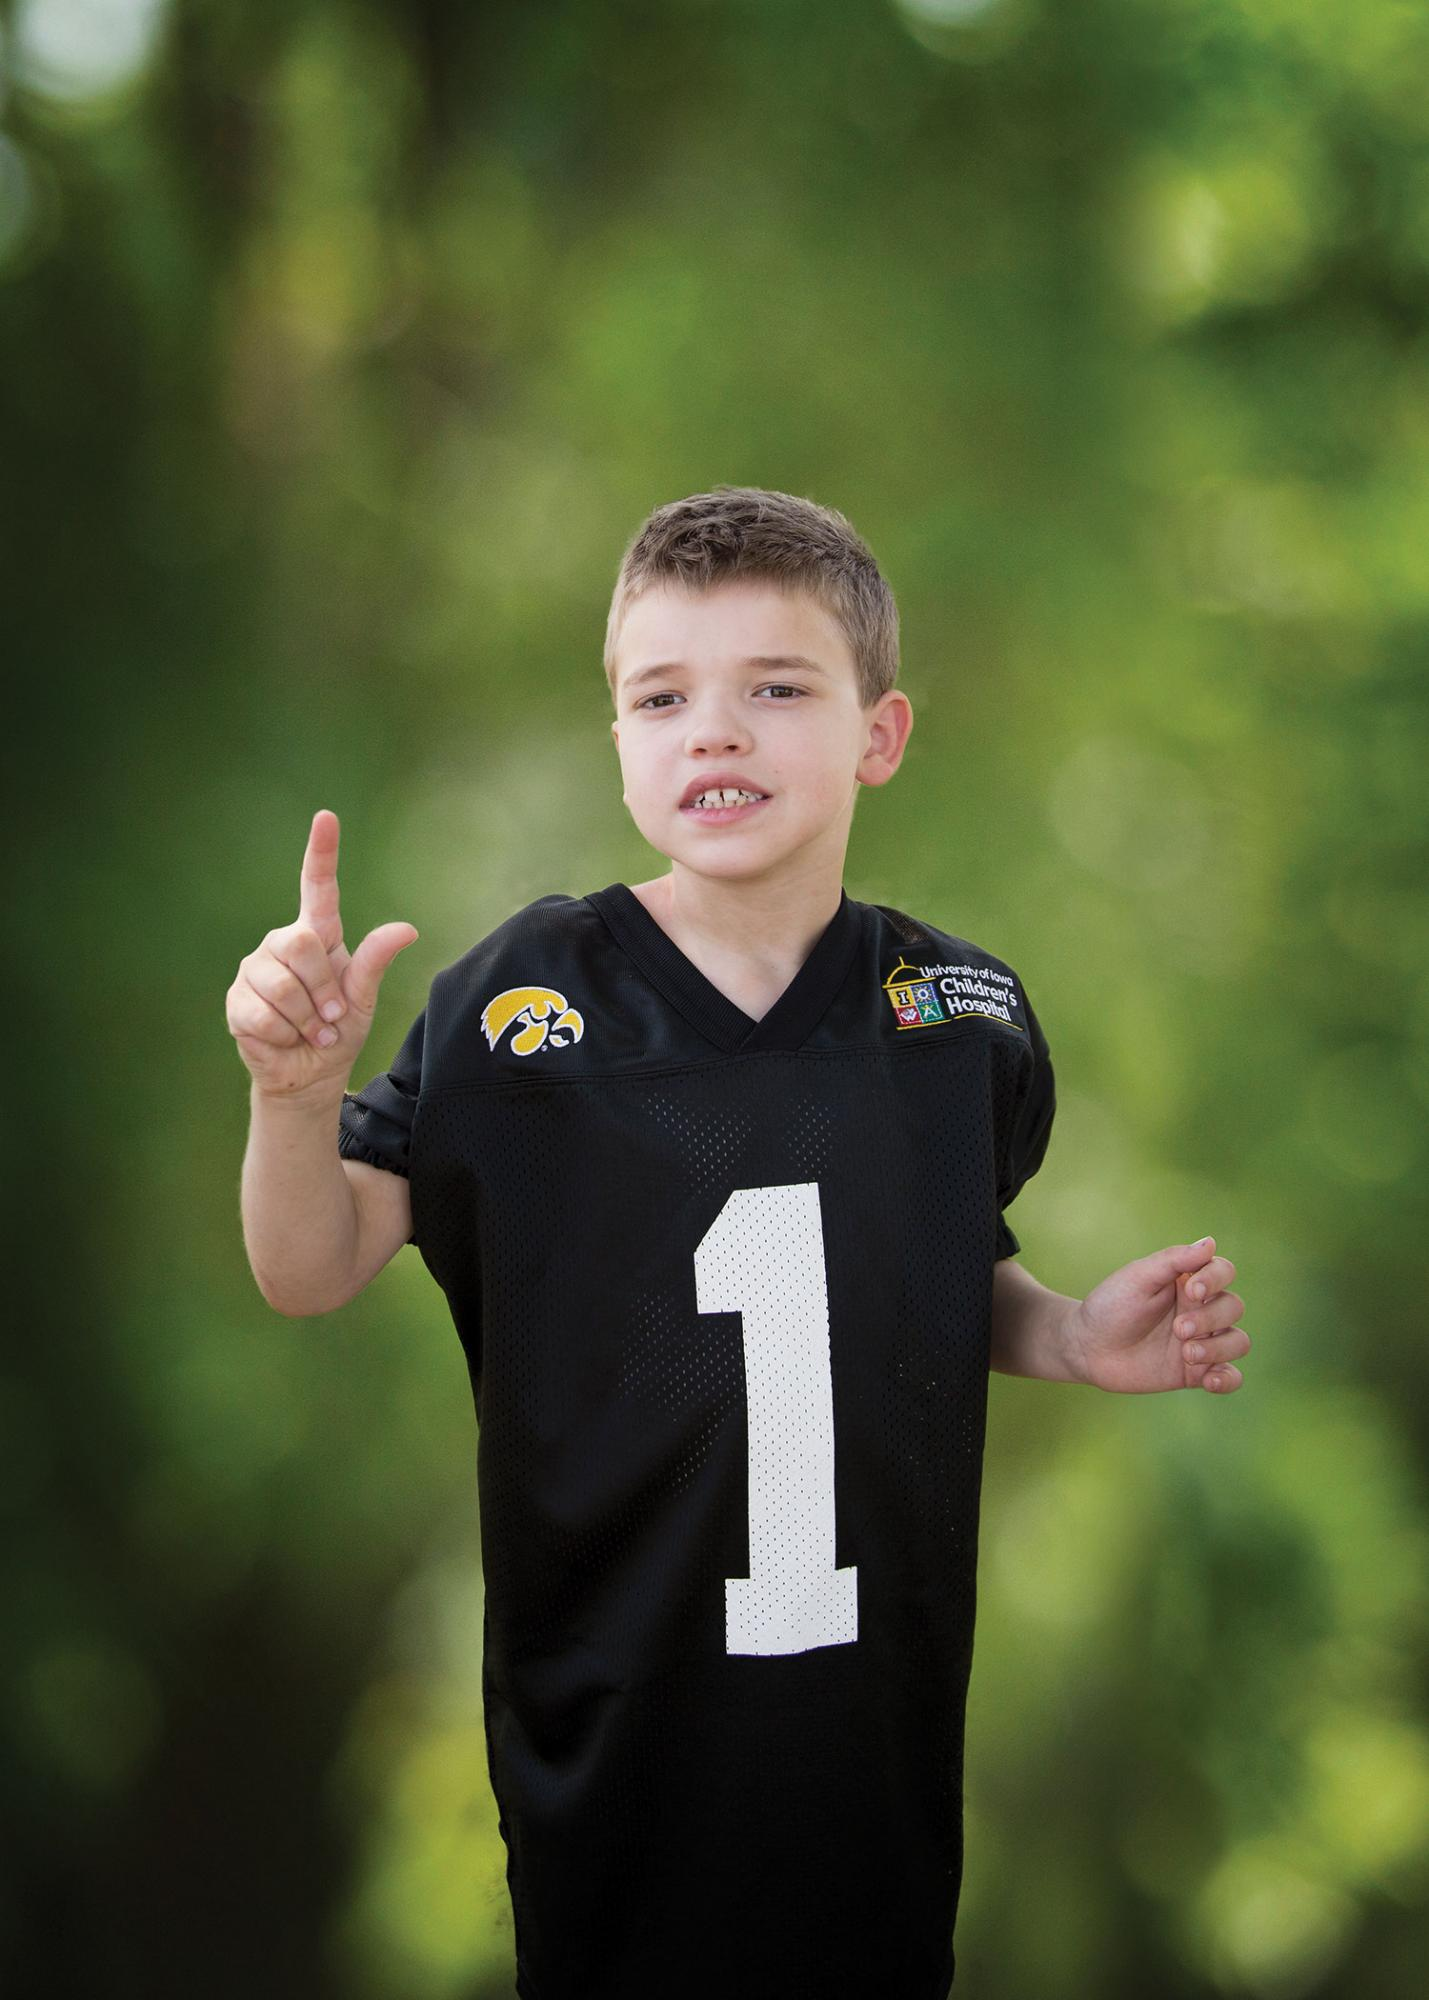 Council Bluffs Boy 9 To Be Honorary Kid Captain When